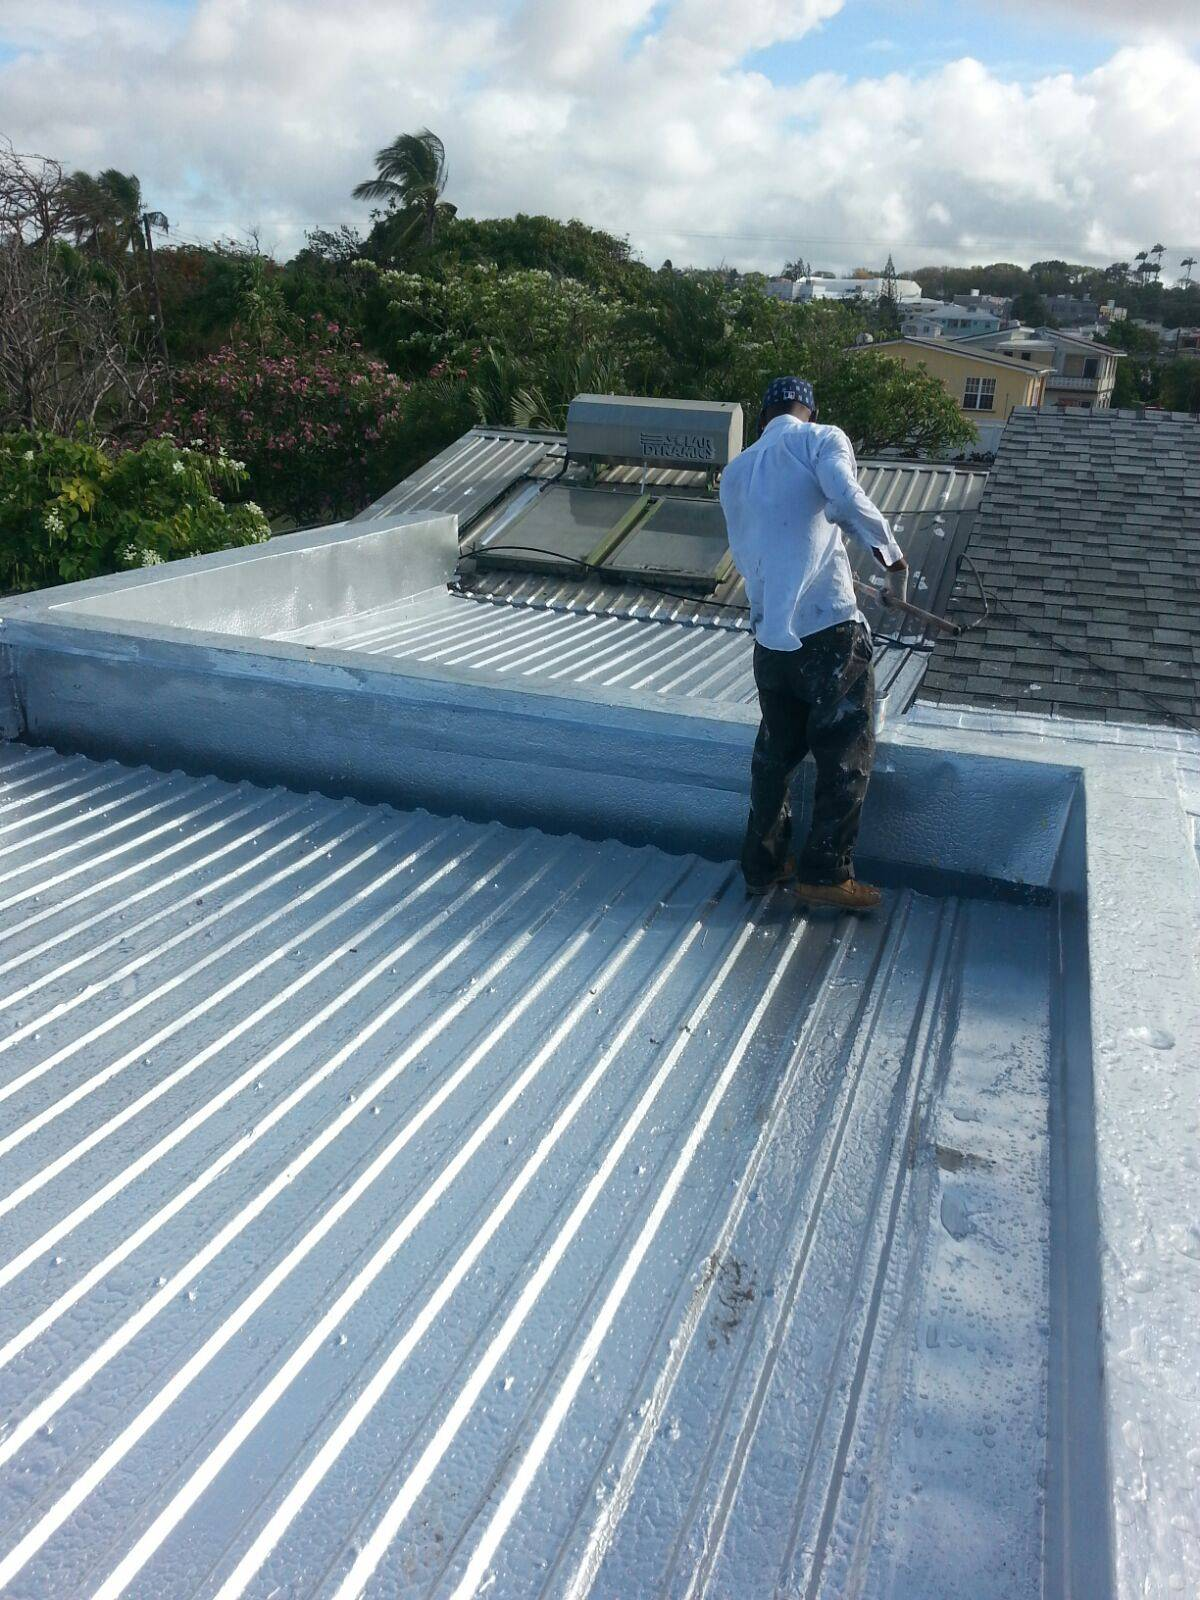 Waterproofing a roof at Warrens Terrace Christ Church with Tecma Imperal P-91